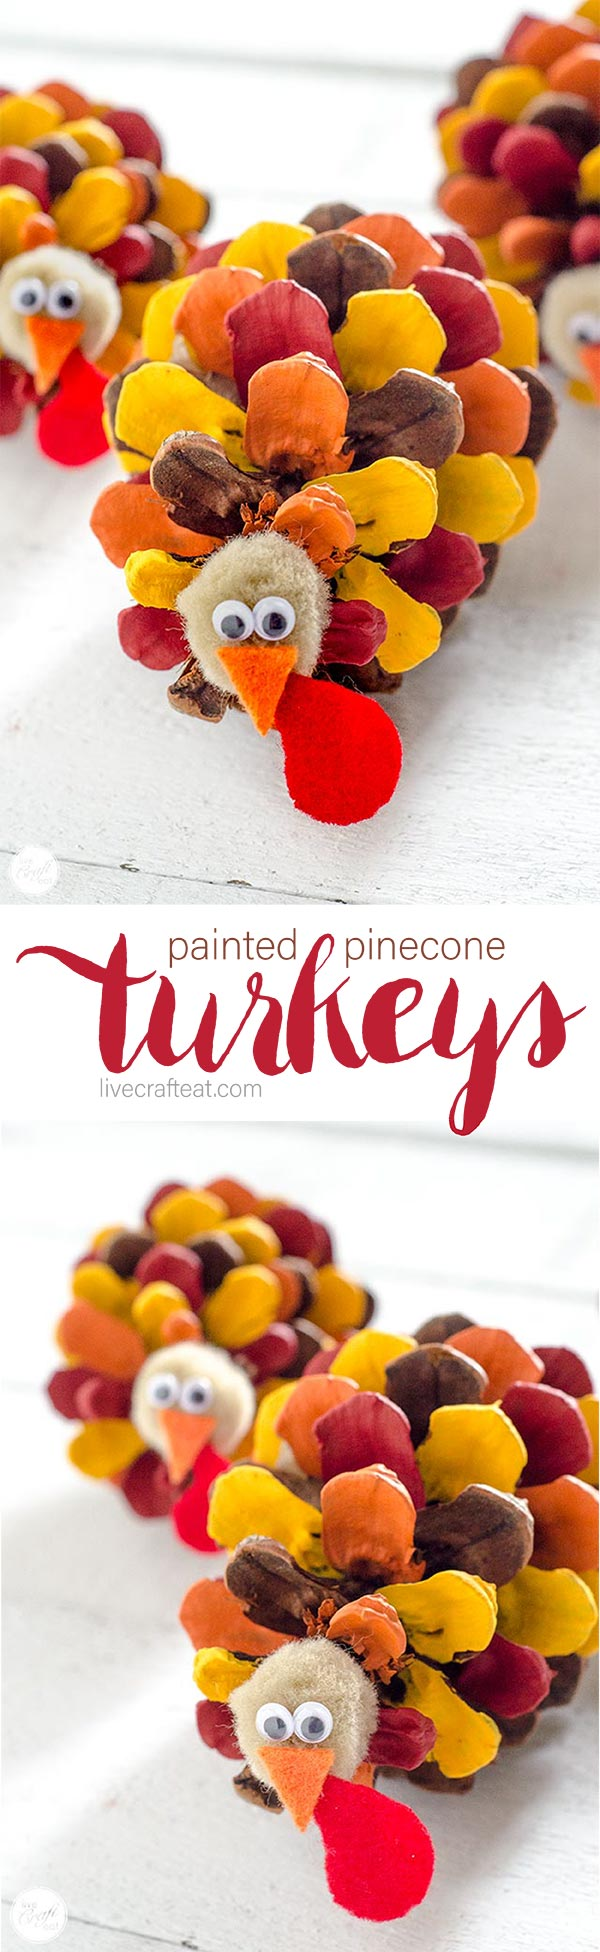 painted pinecone turkeys :: perfect thanksgiving craft for kids, and great as place card holders, or just as cute thanksgiving decorations!